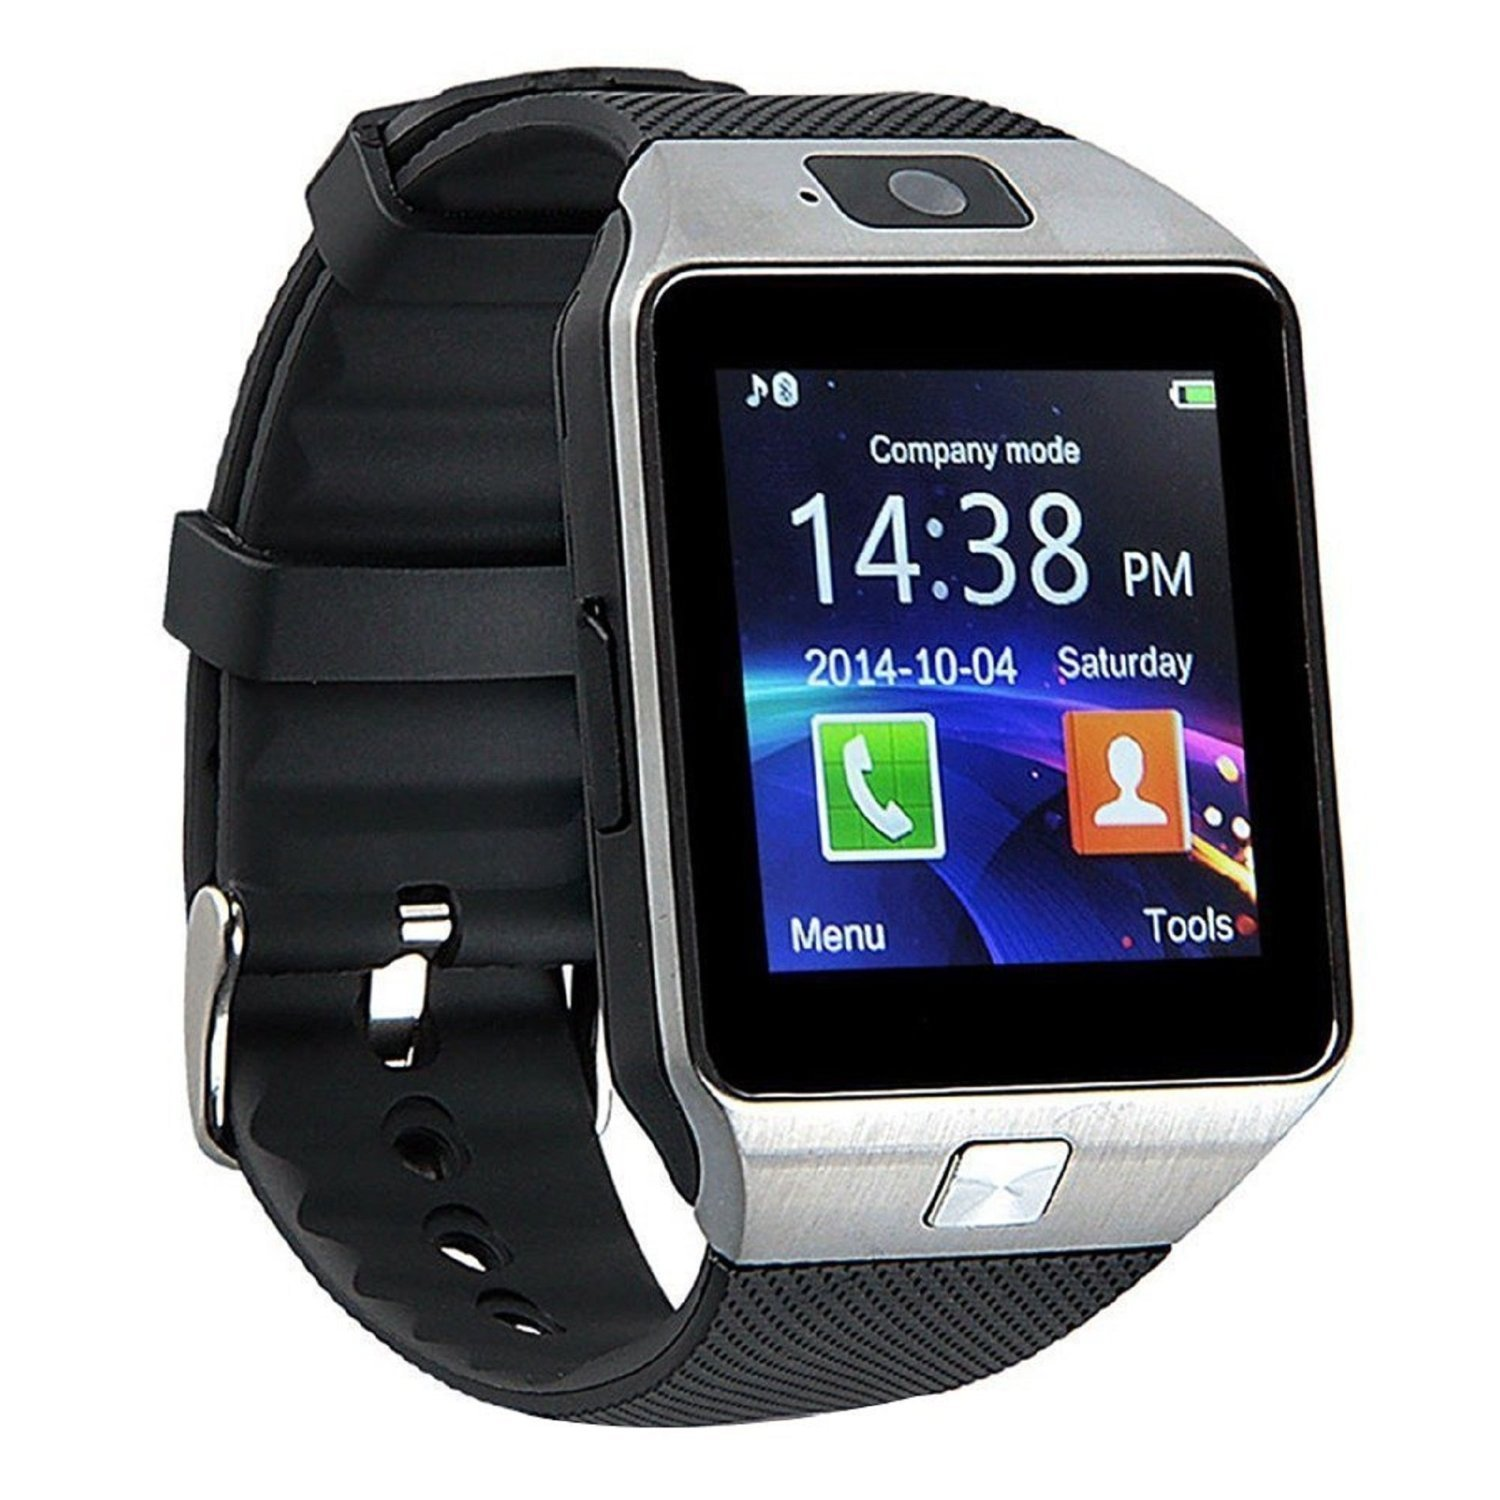 GZDL Bluetooth Smart Watch DZ09 Smartwatch Watch Phone Support SIM TF Card with Camera for Android IOS iPhone Samsung LG Phones Silver